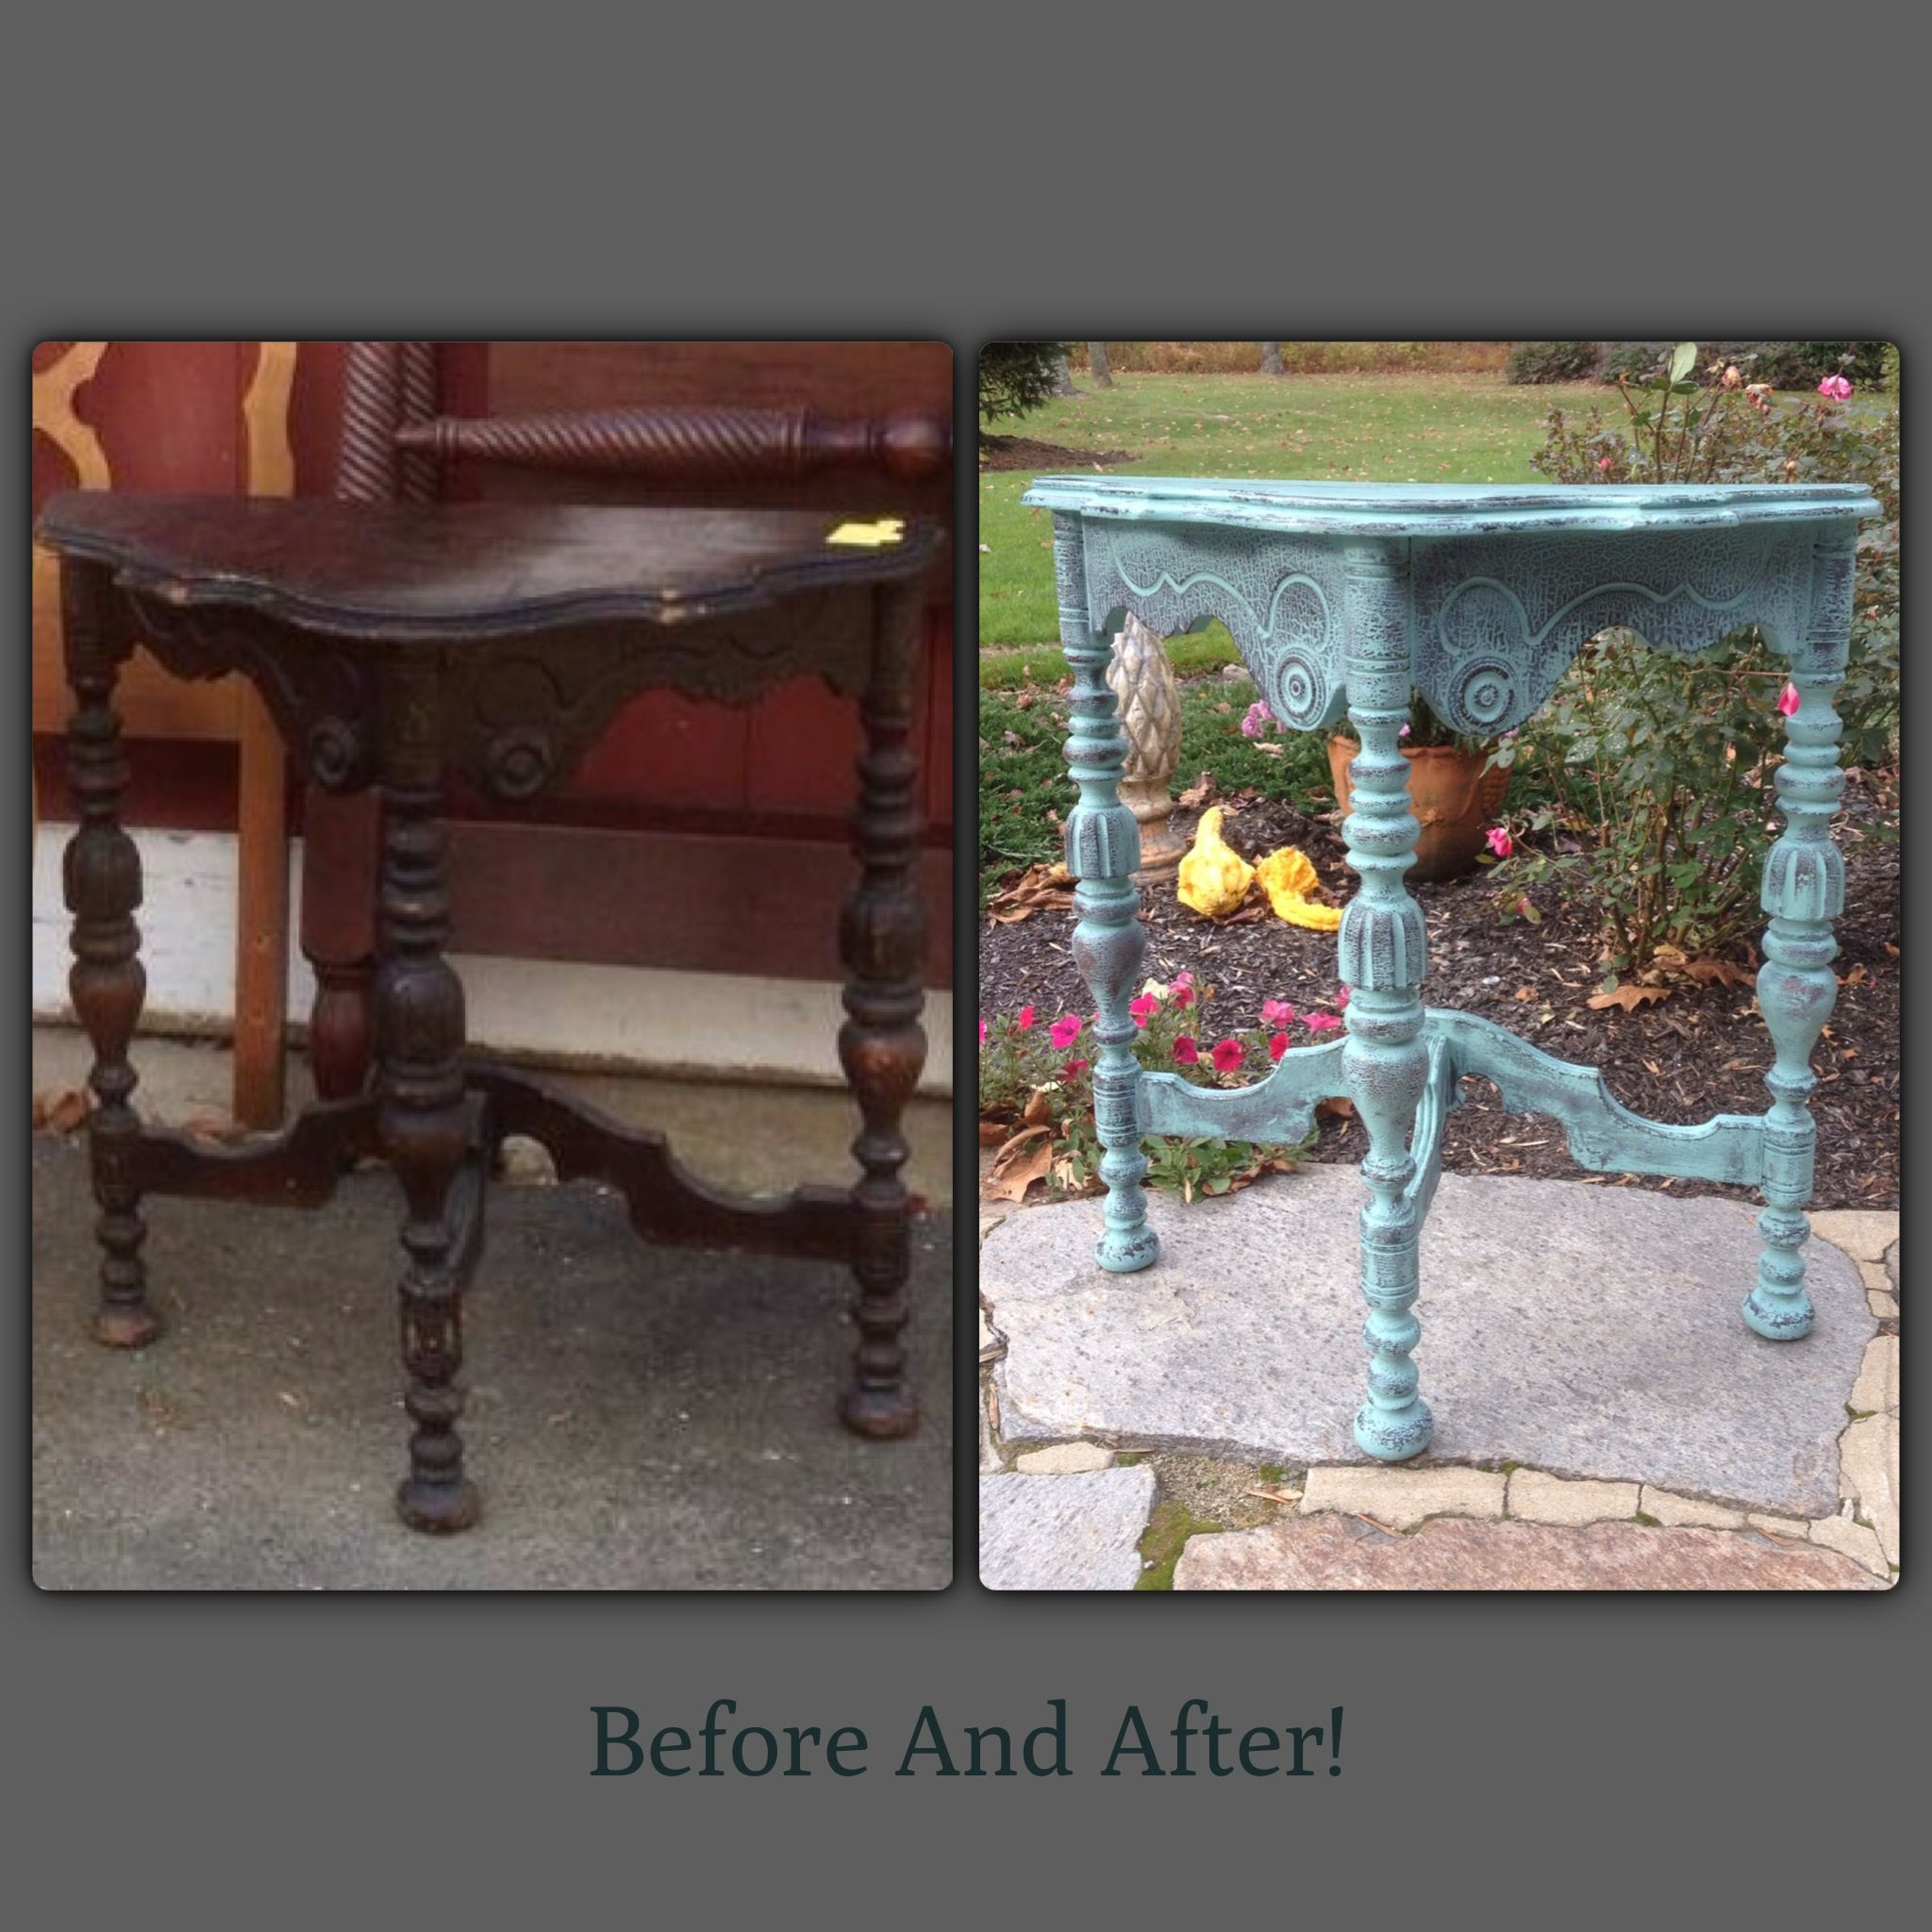 Before And After Teal Furniture Redo Examples Pinterest